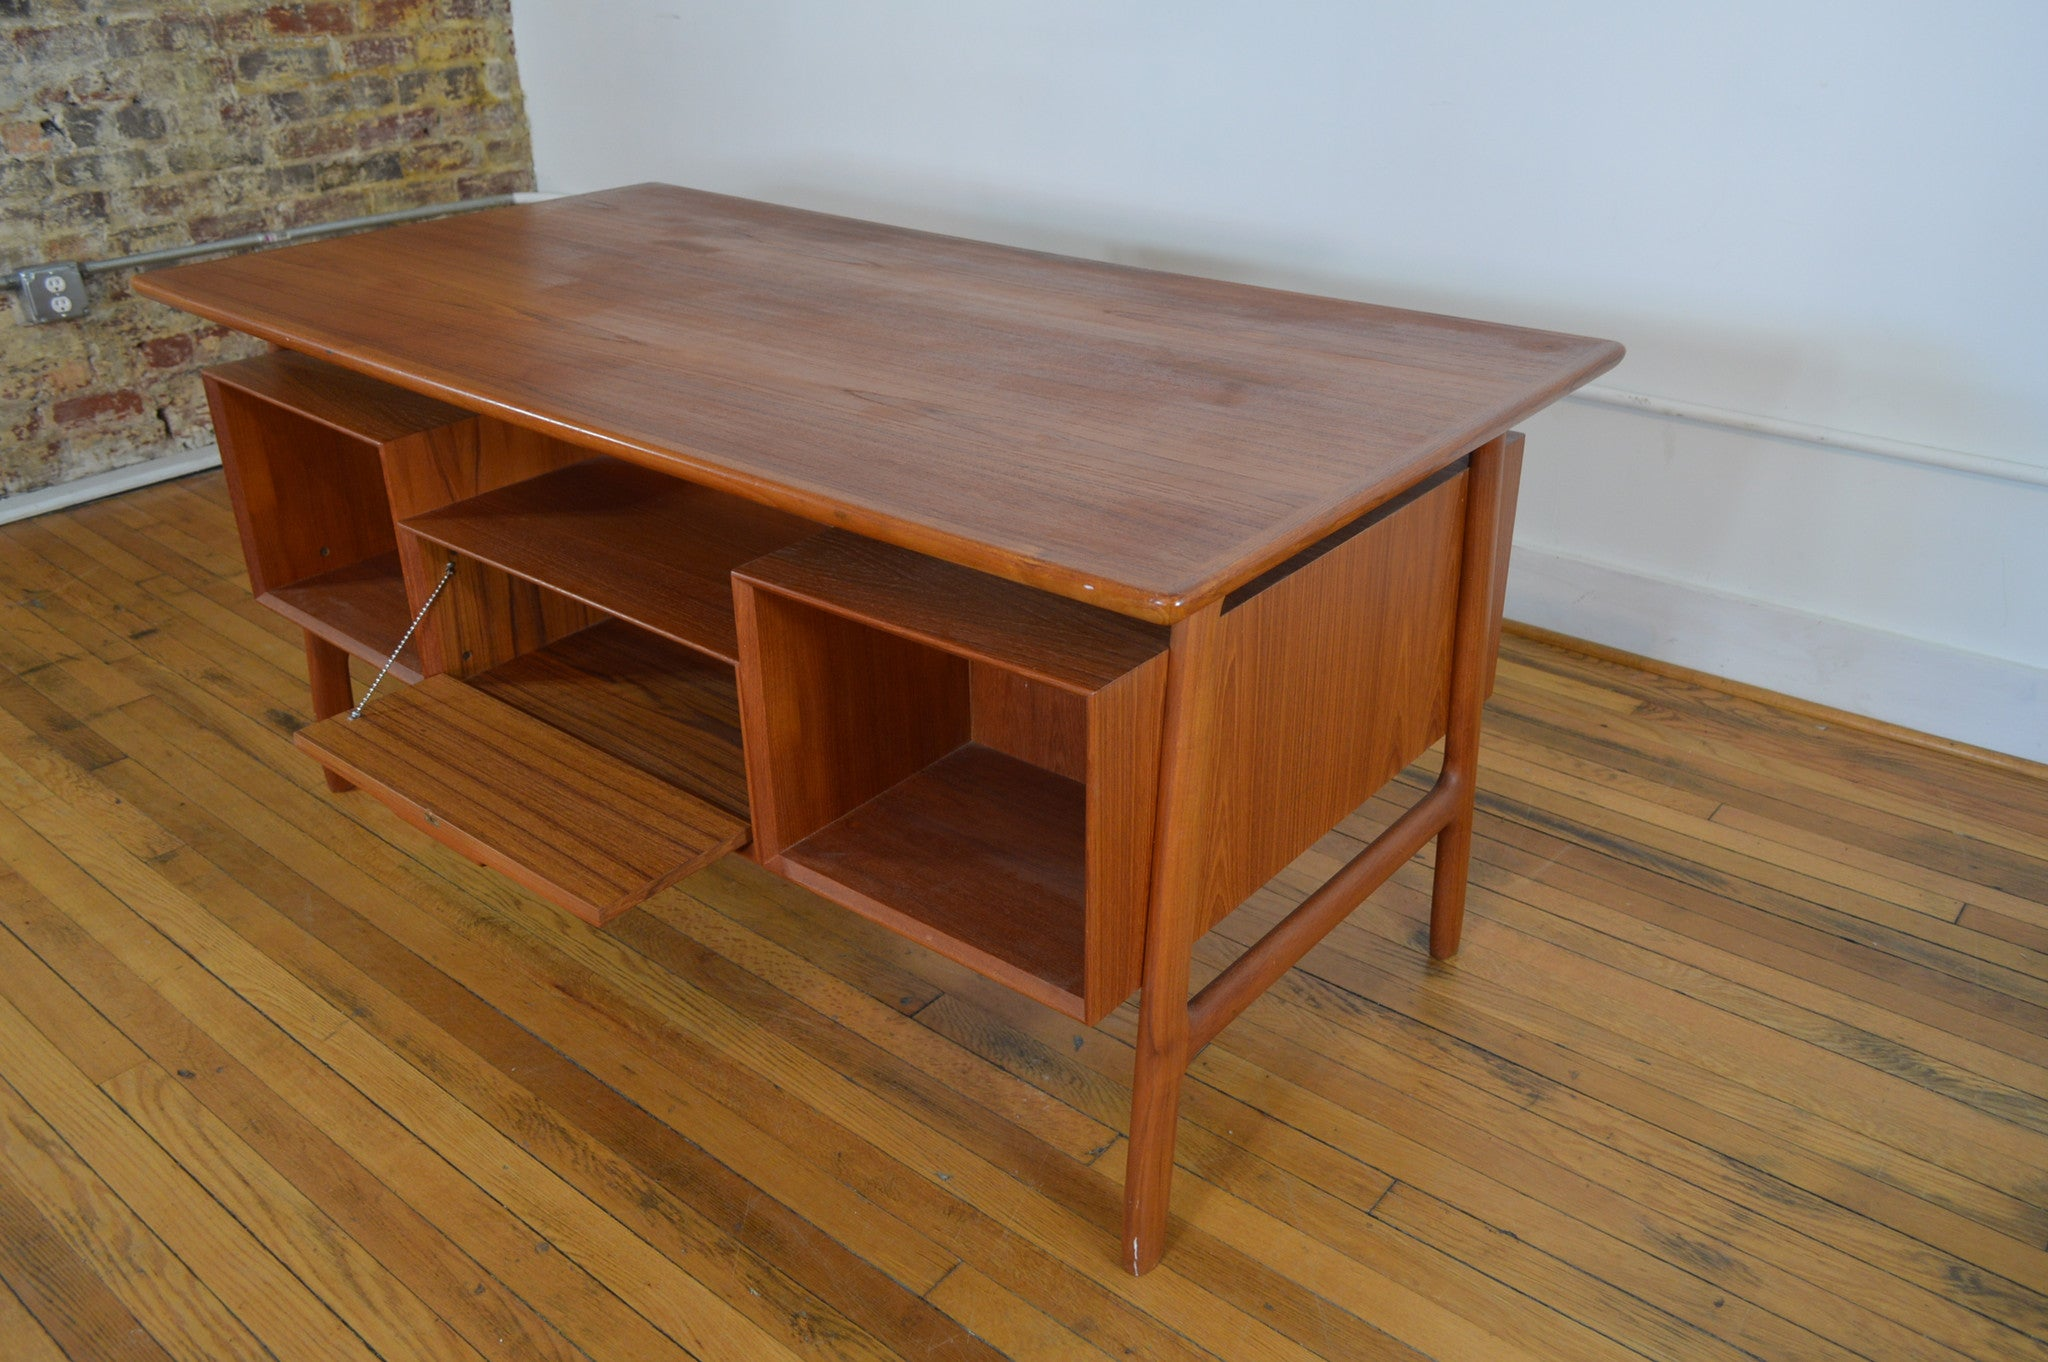 vodder at h by arne danish p desk pamono sale hansen for